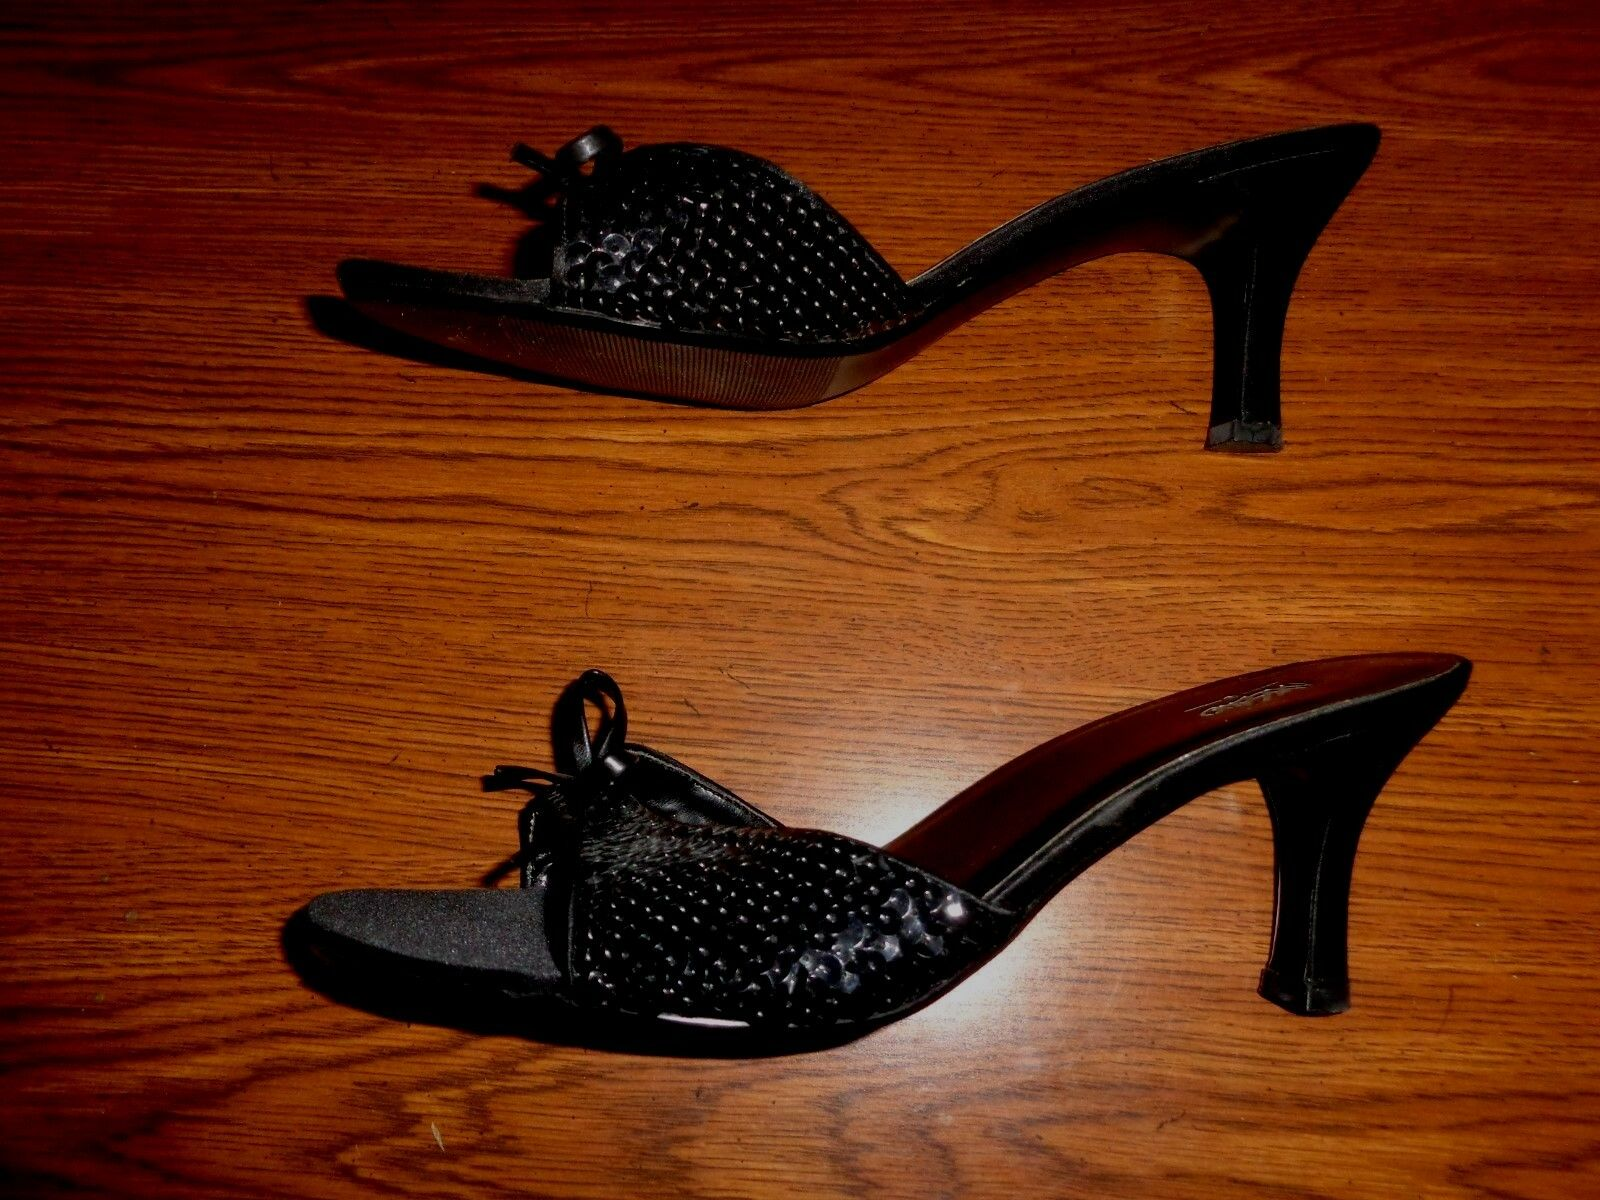 Mossimo SHOES 9 WOMEN'S SIZE 9 SHOES (2.75 INCH HEEL) 45faea